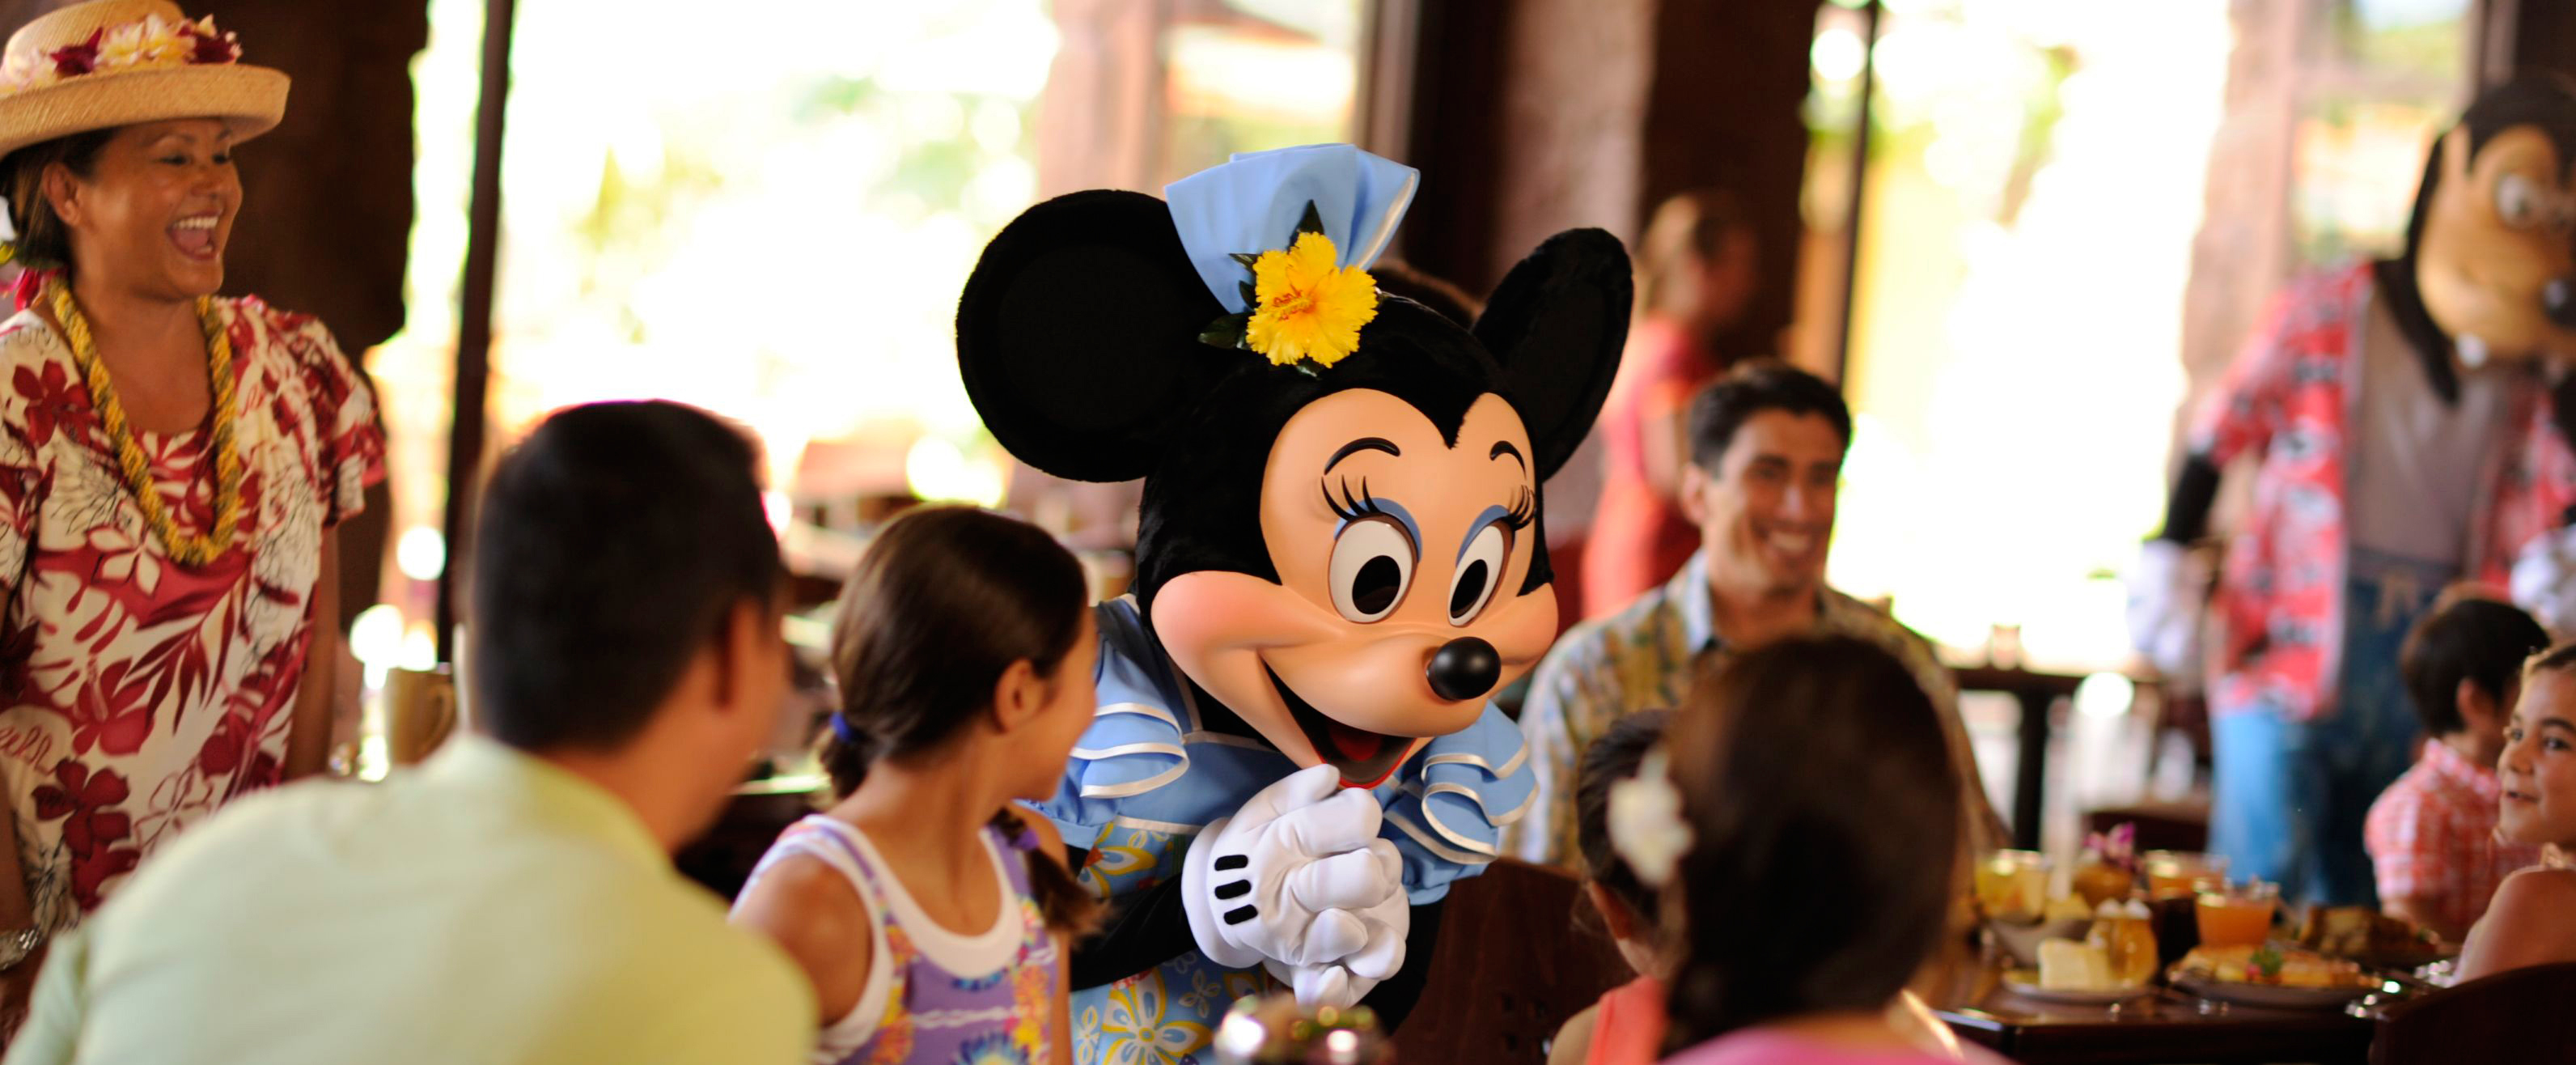 Minnie Mouse greets a family at Makahiki restaurant